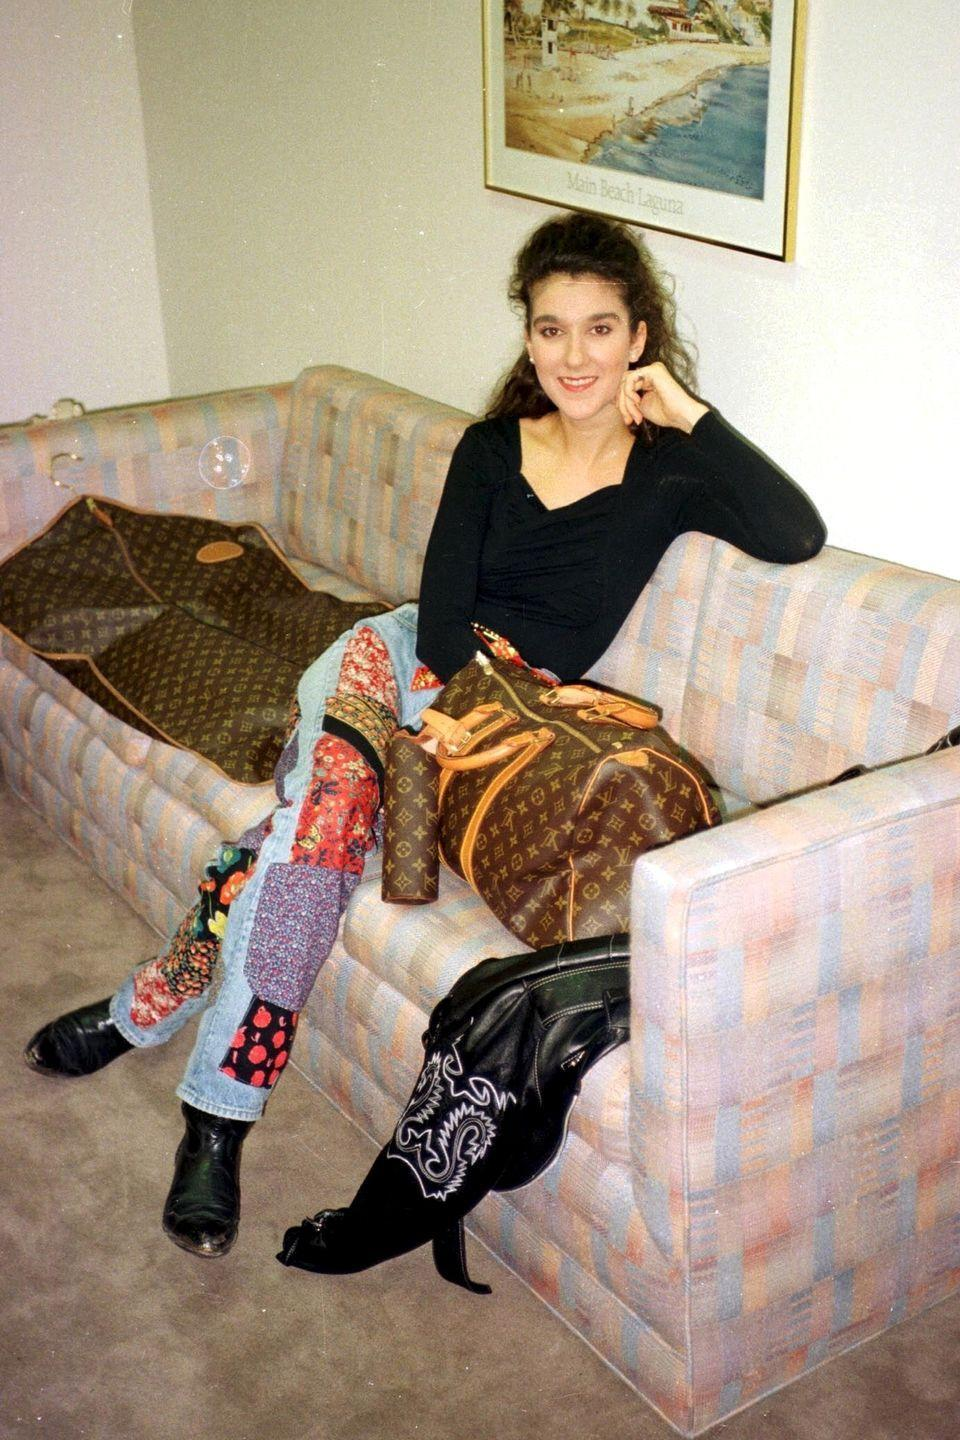 <p>A then-22-year-old Celine showed off her fashion range from the start in high-waisted patchwork jeans and black leather cowboy boots. She surrounded herself with Louis Vuitton luggage to top off the look, as one does. </p>